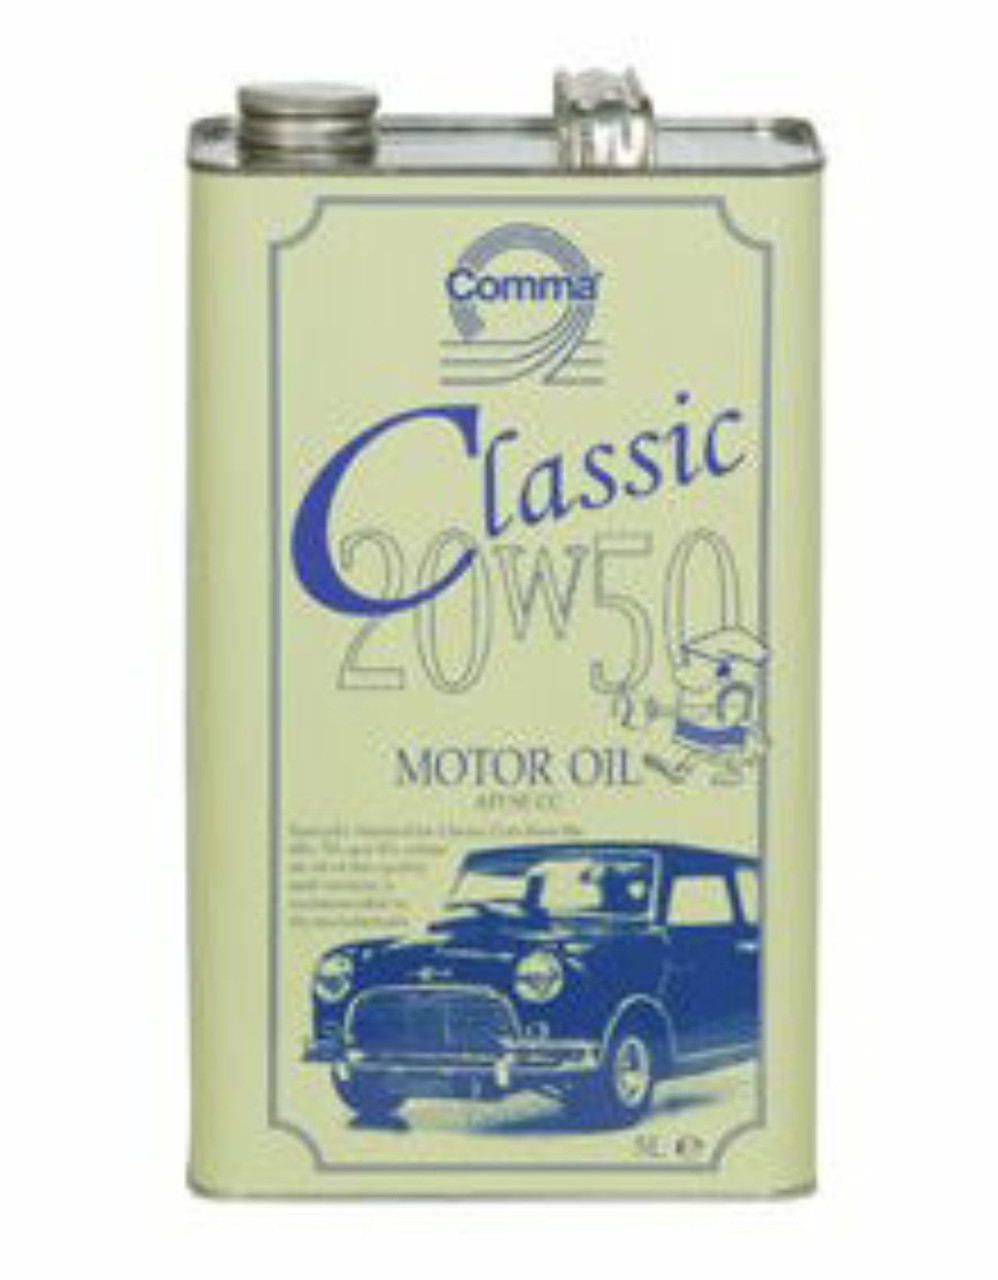 Comma classic  20w / 50 engine oil from parts4engines.com